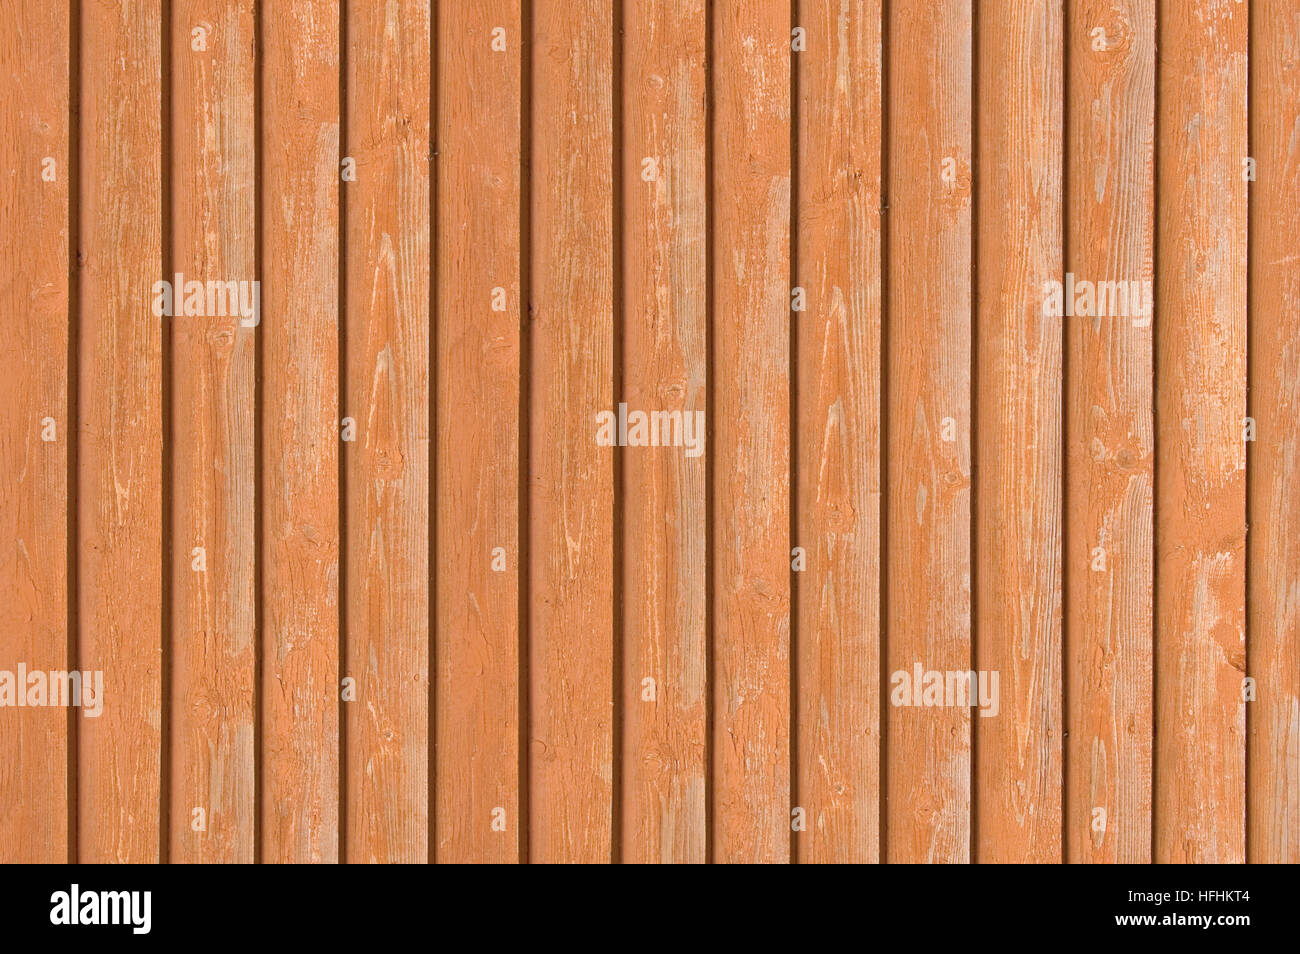 Natural old wood fence planks, wooden close board texture, overlapping light reddish brown closeboard terracotta - Stock Image